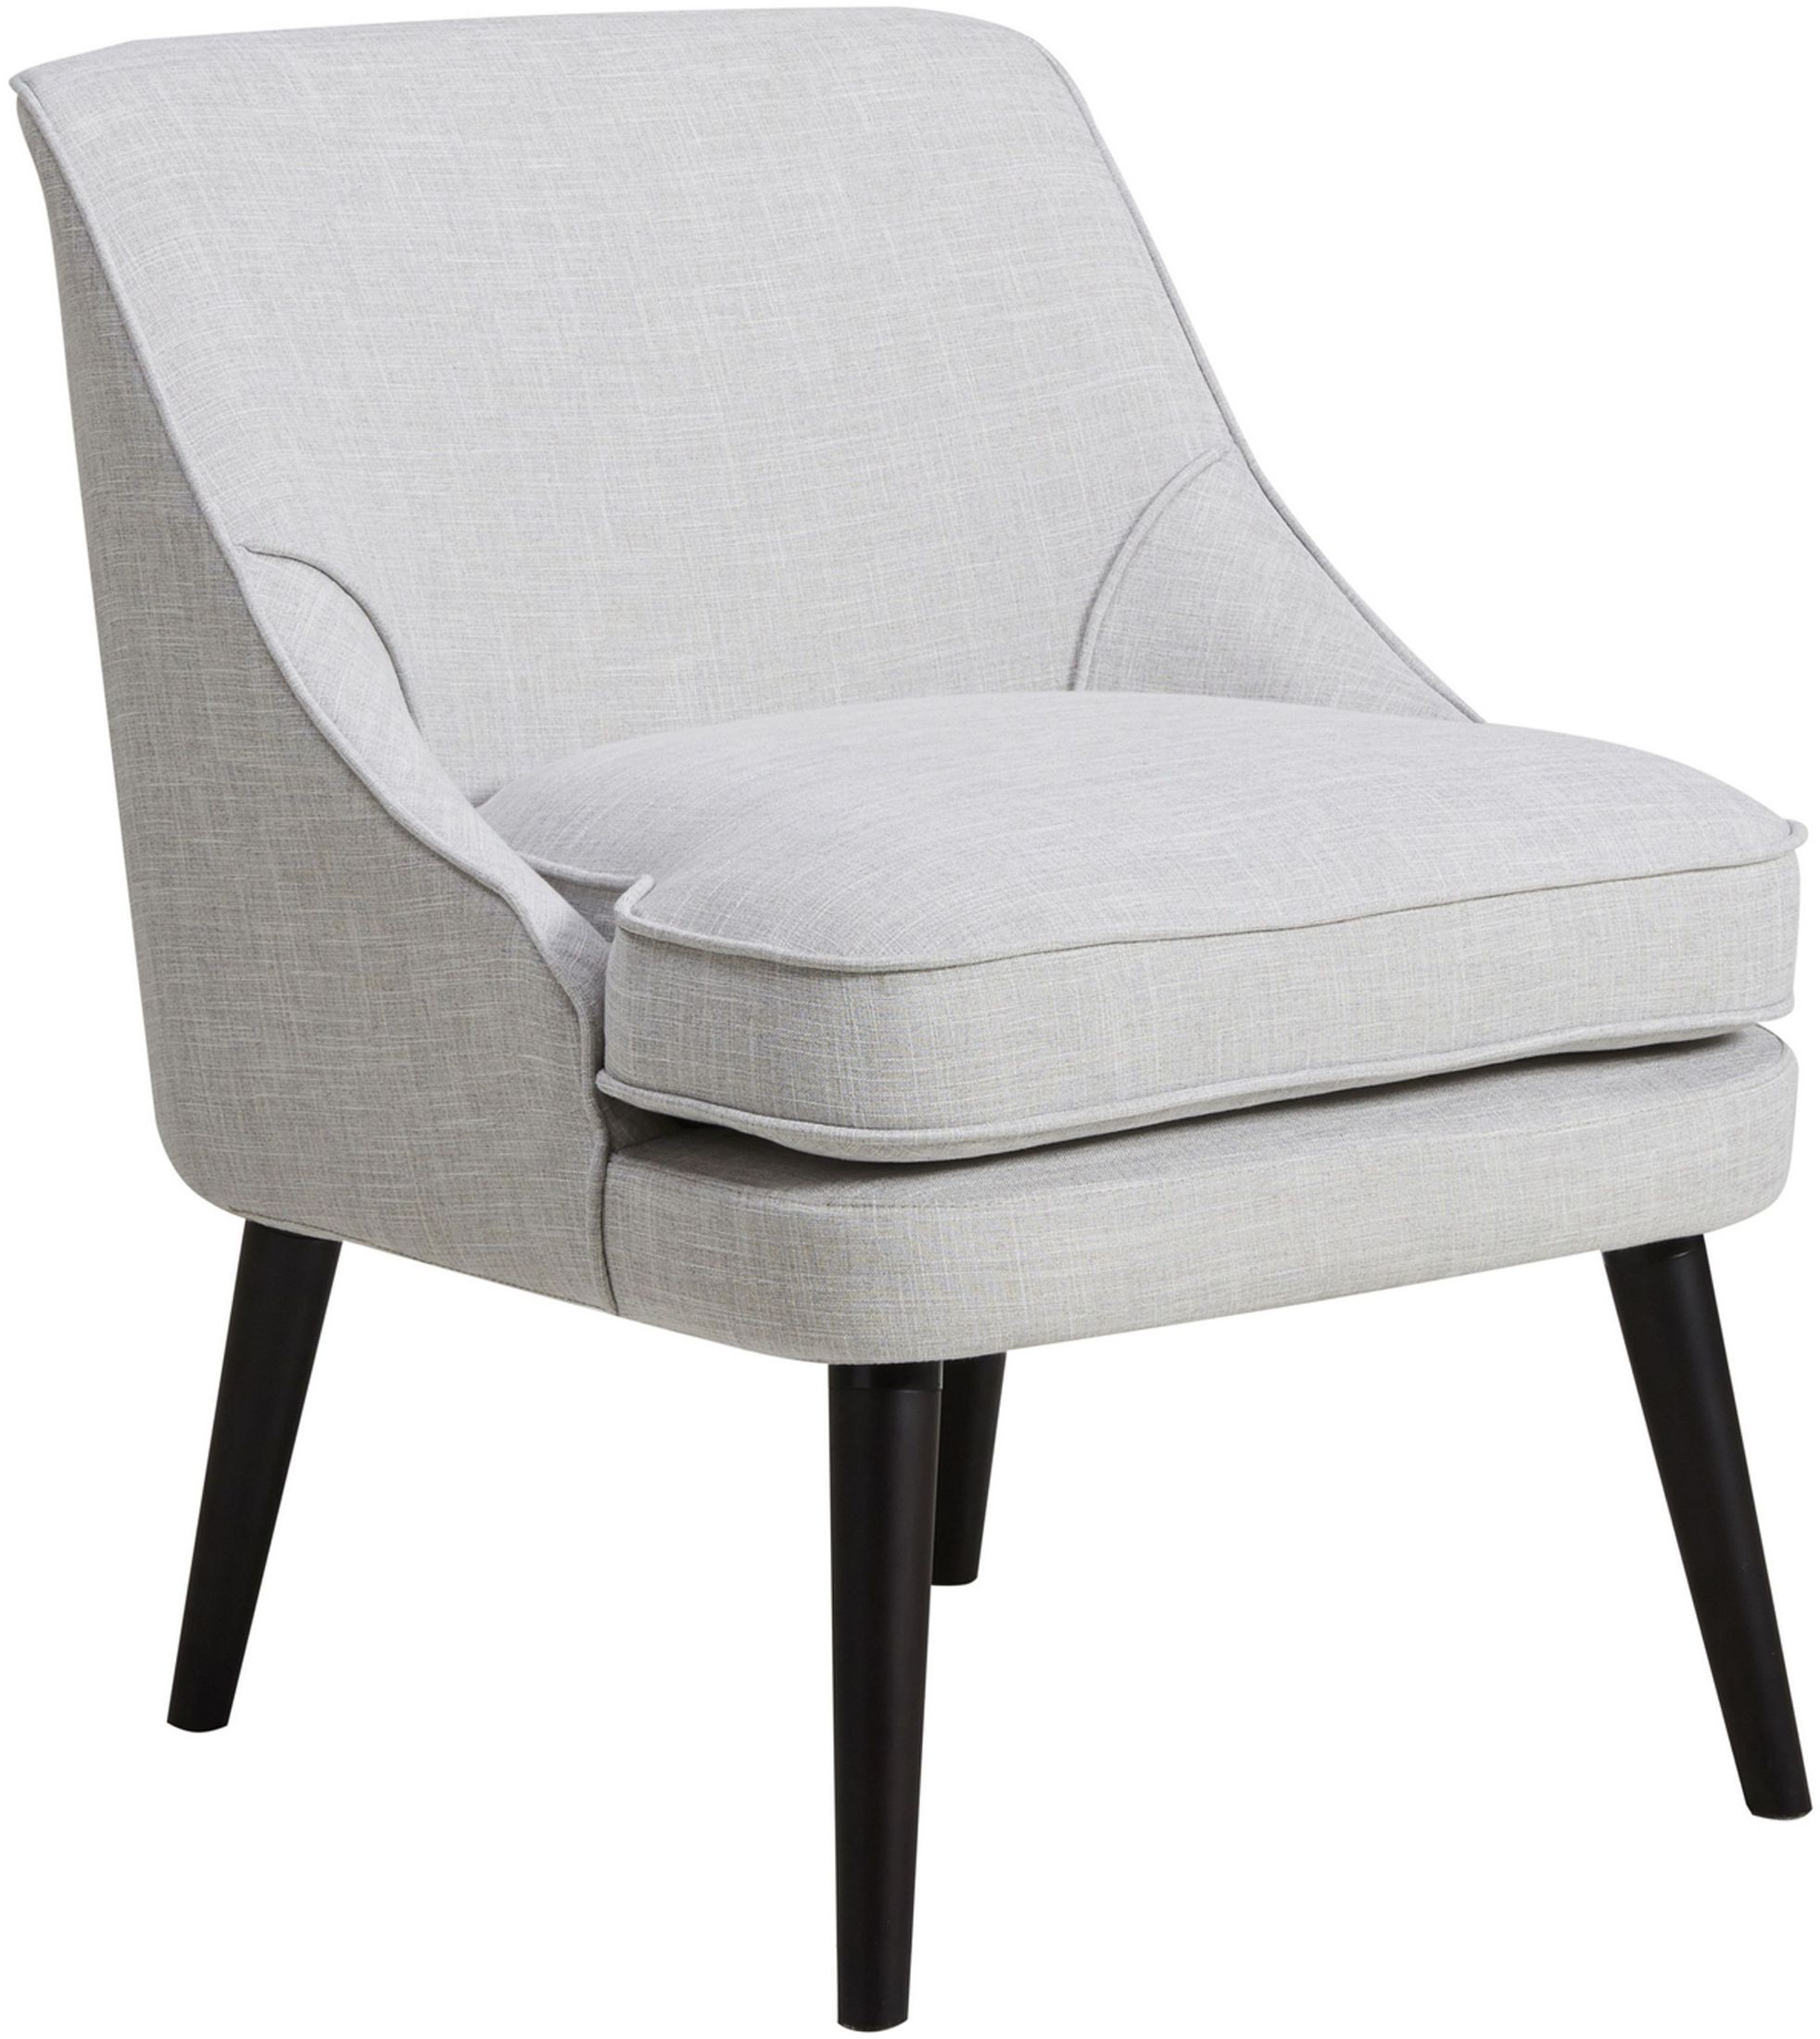 Grey upholstered accent chair from pulaski coleman furniture